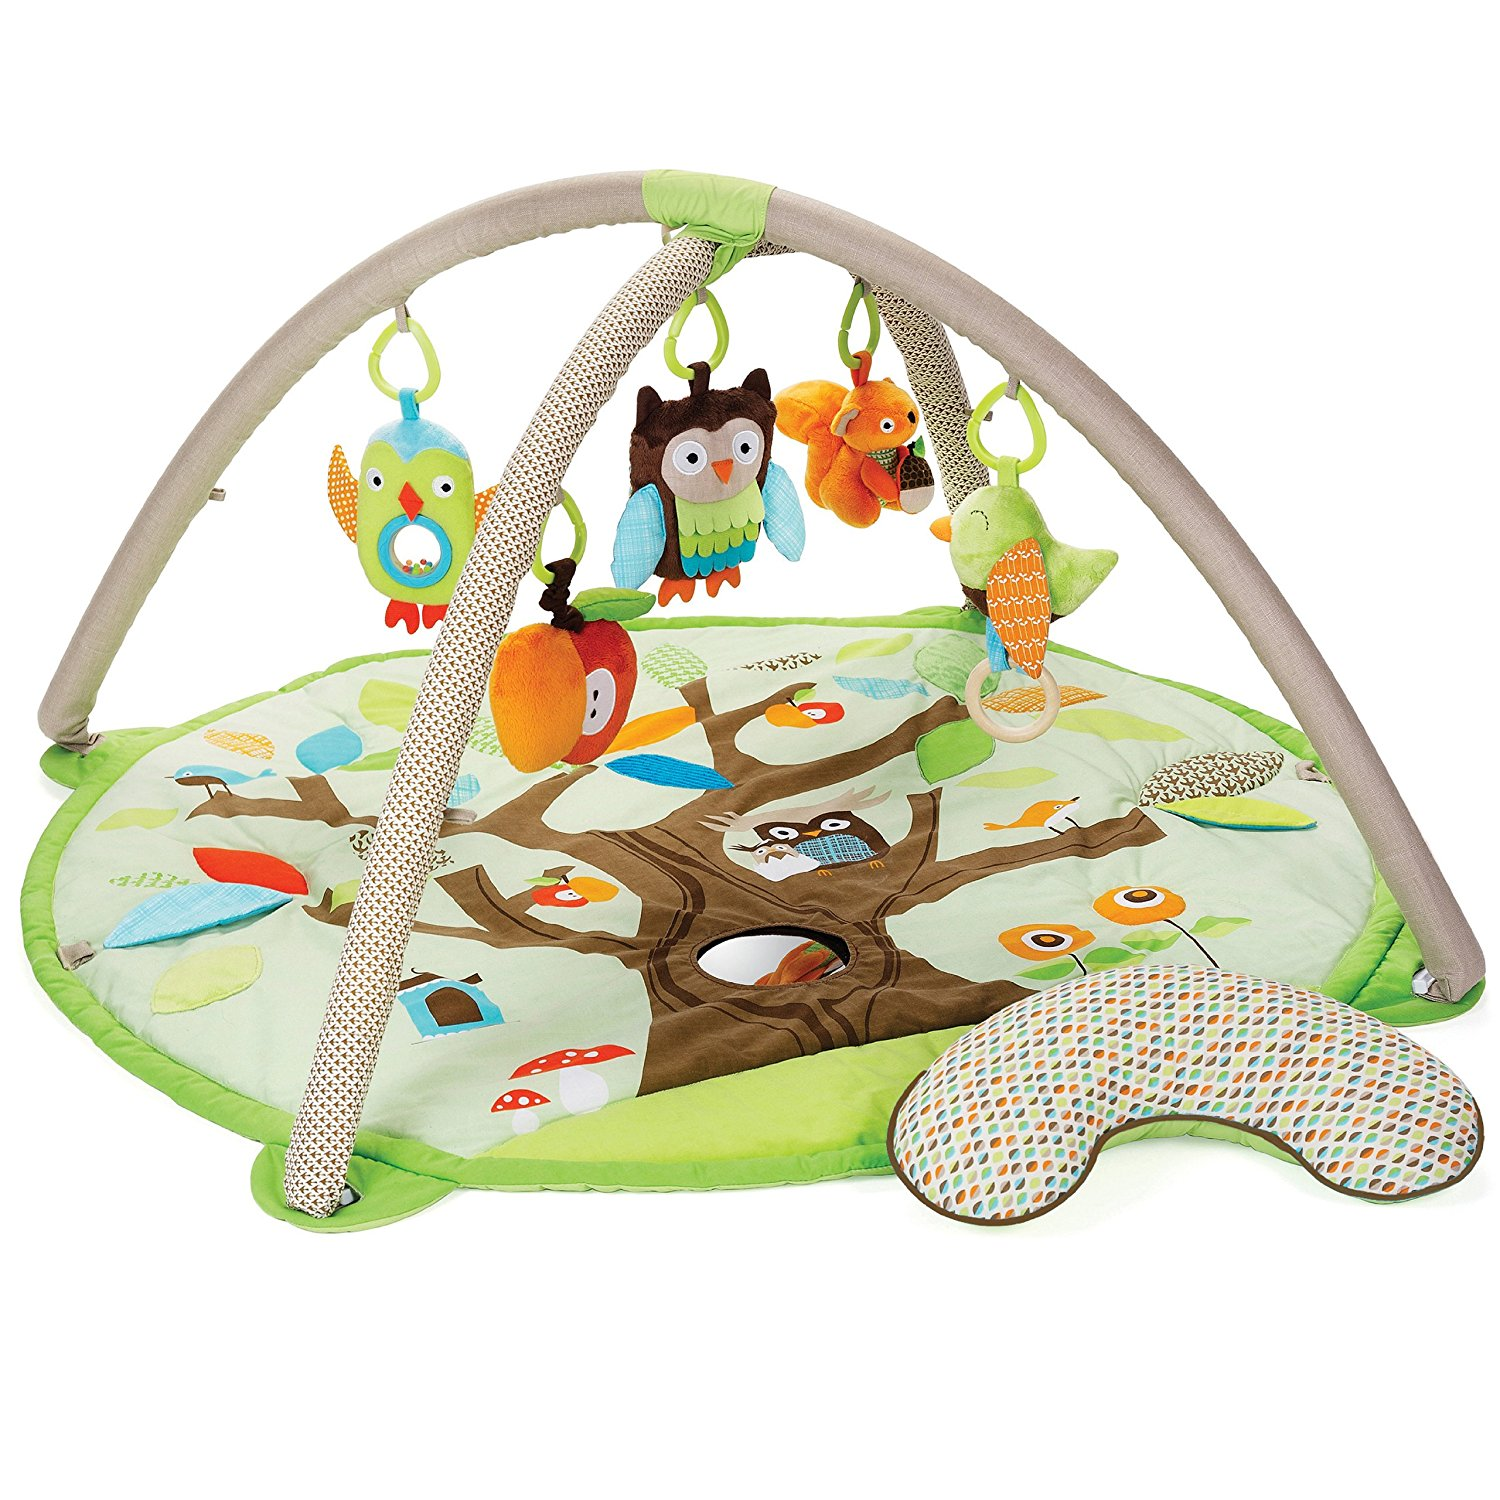 Skip Hop Treetop Friends Activity Gym Review  #toyreview  $63.74